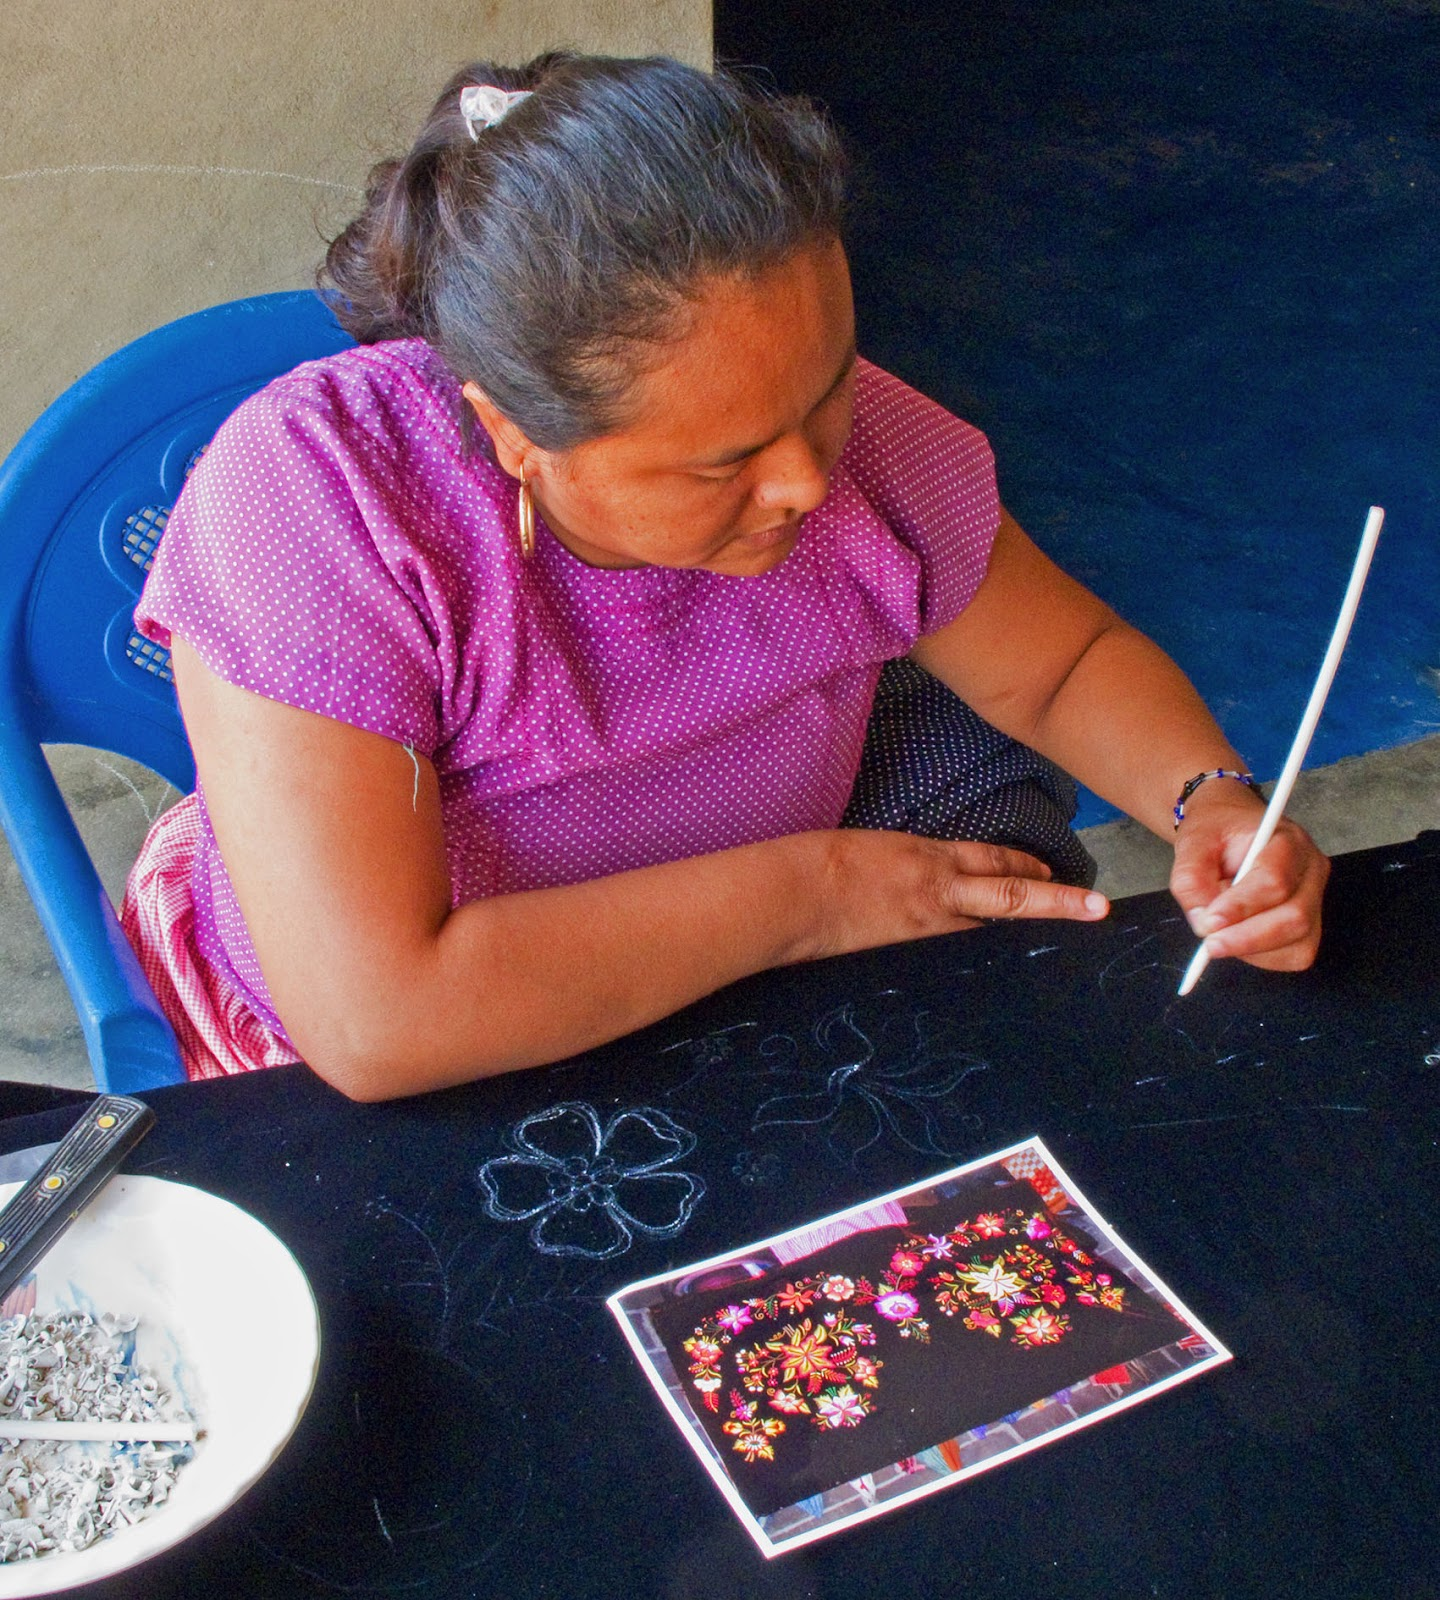 tehuantepec divorced singles Newly divorced what comes next society is much more accepting of singles than even a decade ago, when solo restaurant diners often got the hairy eyeball.